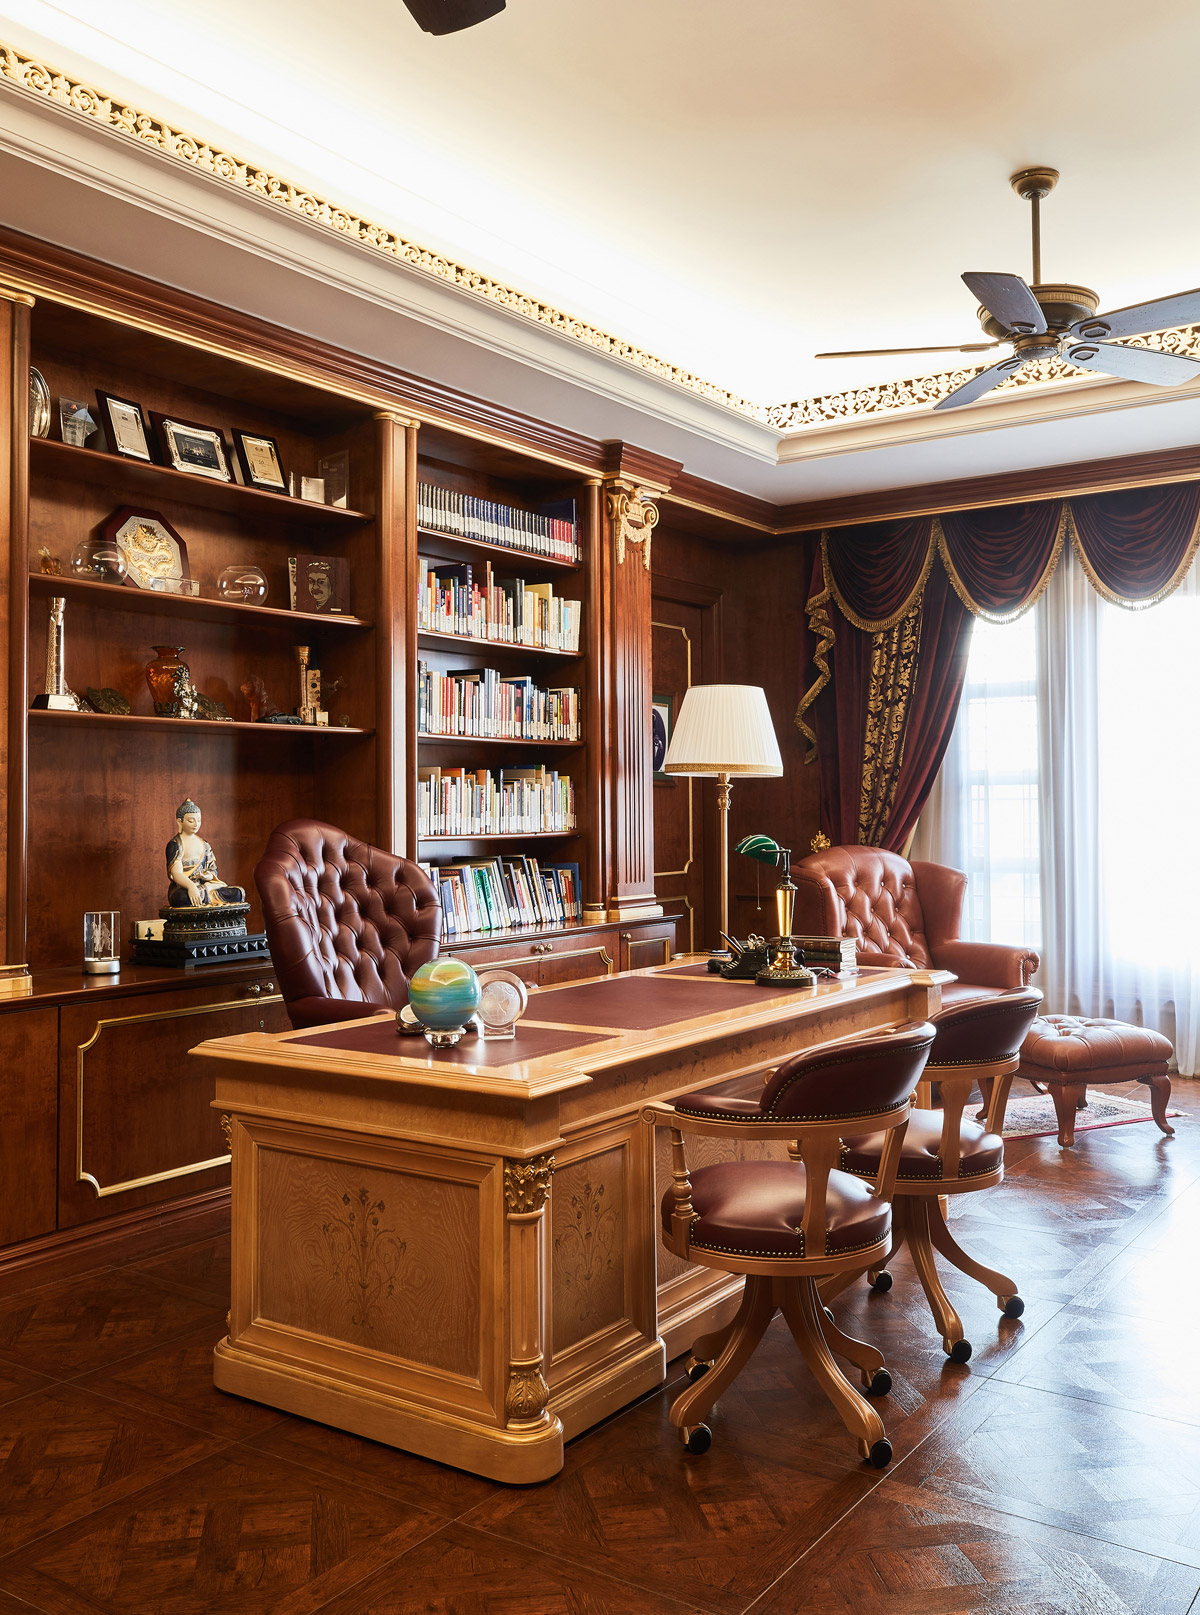 rococo style, Palatial Villa Embodies Rococo Style with Monarchical Opulence